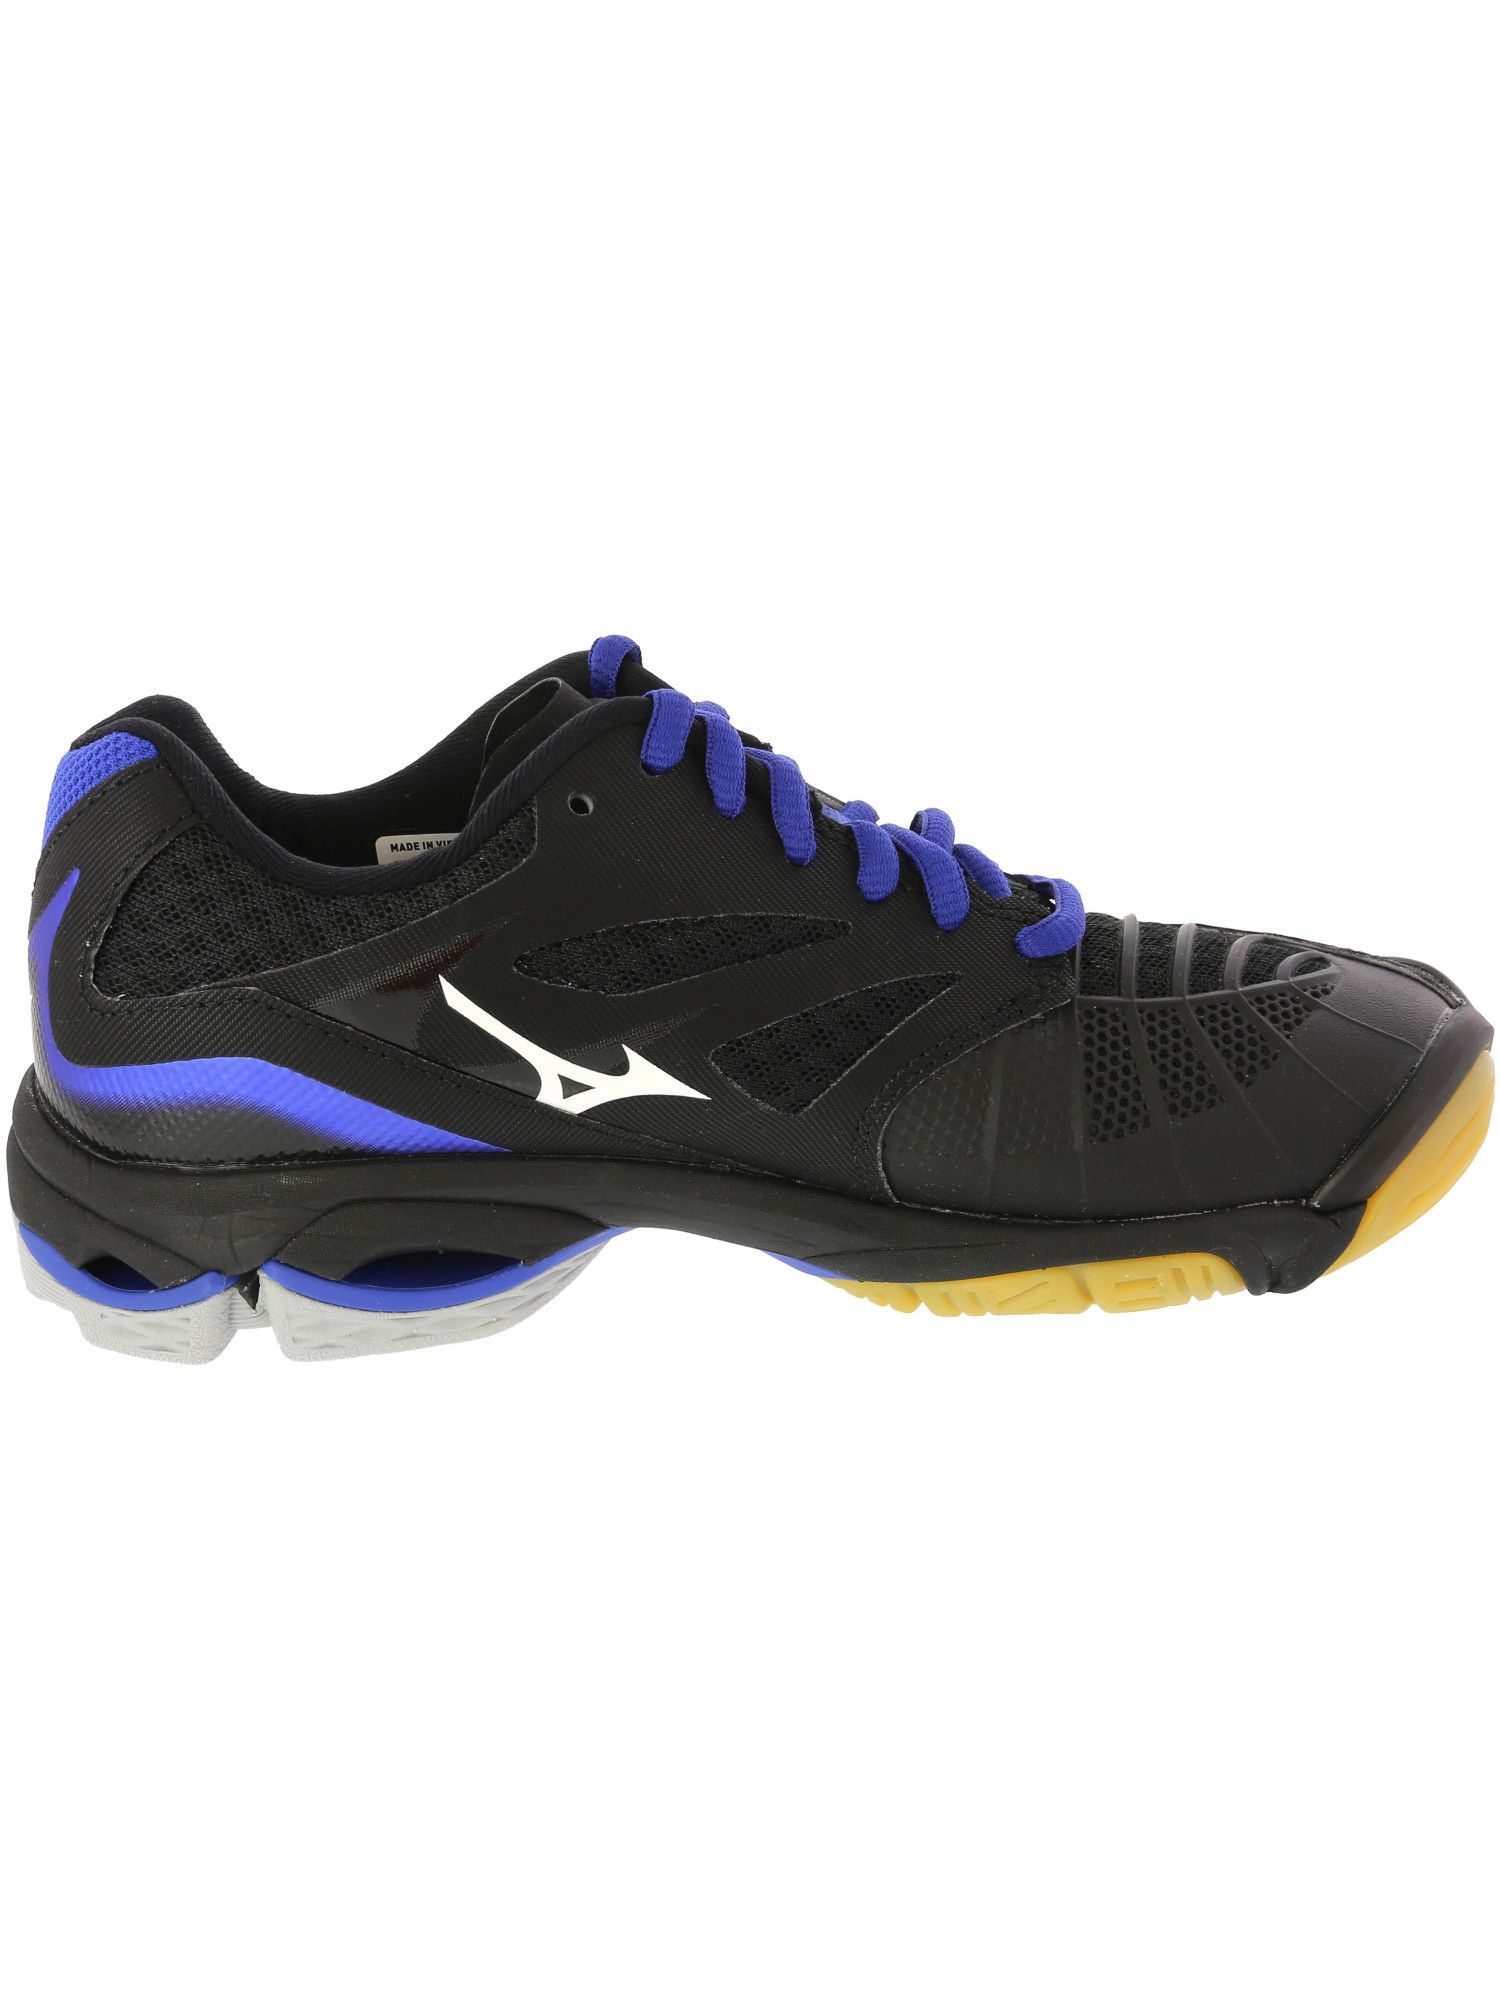 Mizuno Wave Lightning Z3 Volleyball Shoe Ad Spon Lightning Wave Mizuno Women Shoes Volleyball Shoes Shoes